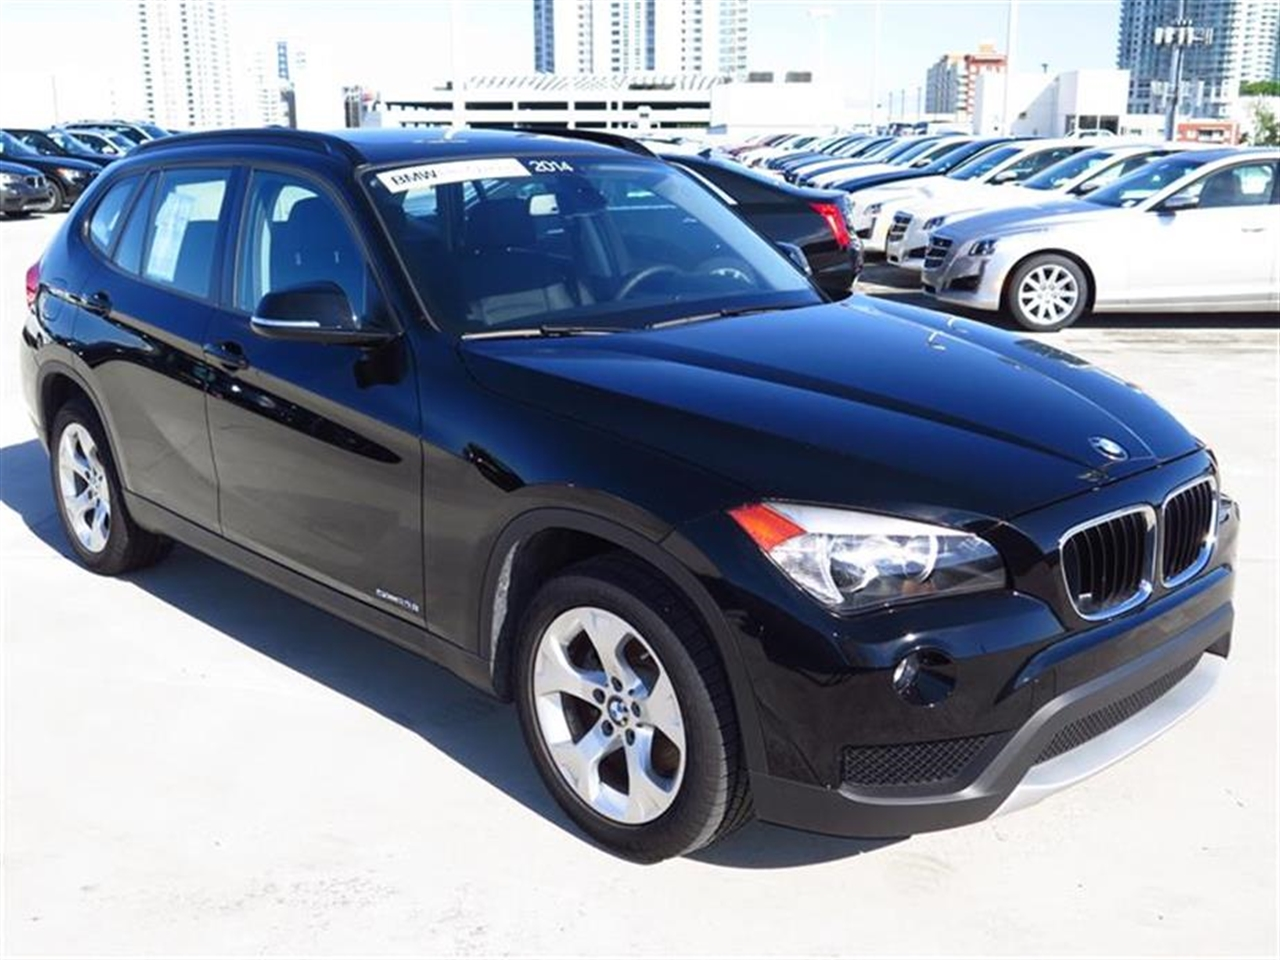 2014 BMW X1 RWD 4dr sDrive28i 8499 miles 2 Seatback Storage Pockets 3 12V DC Power Outlets LEATH